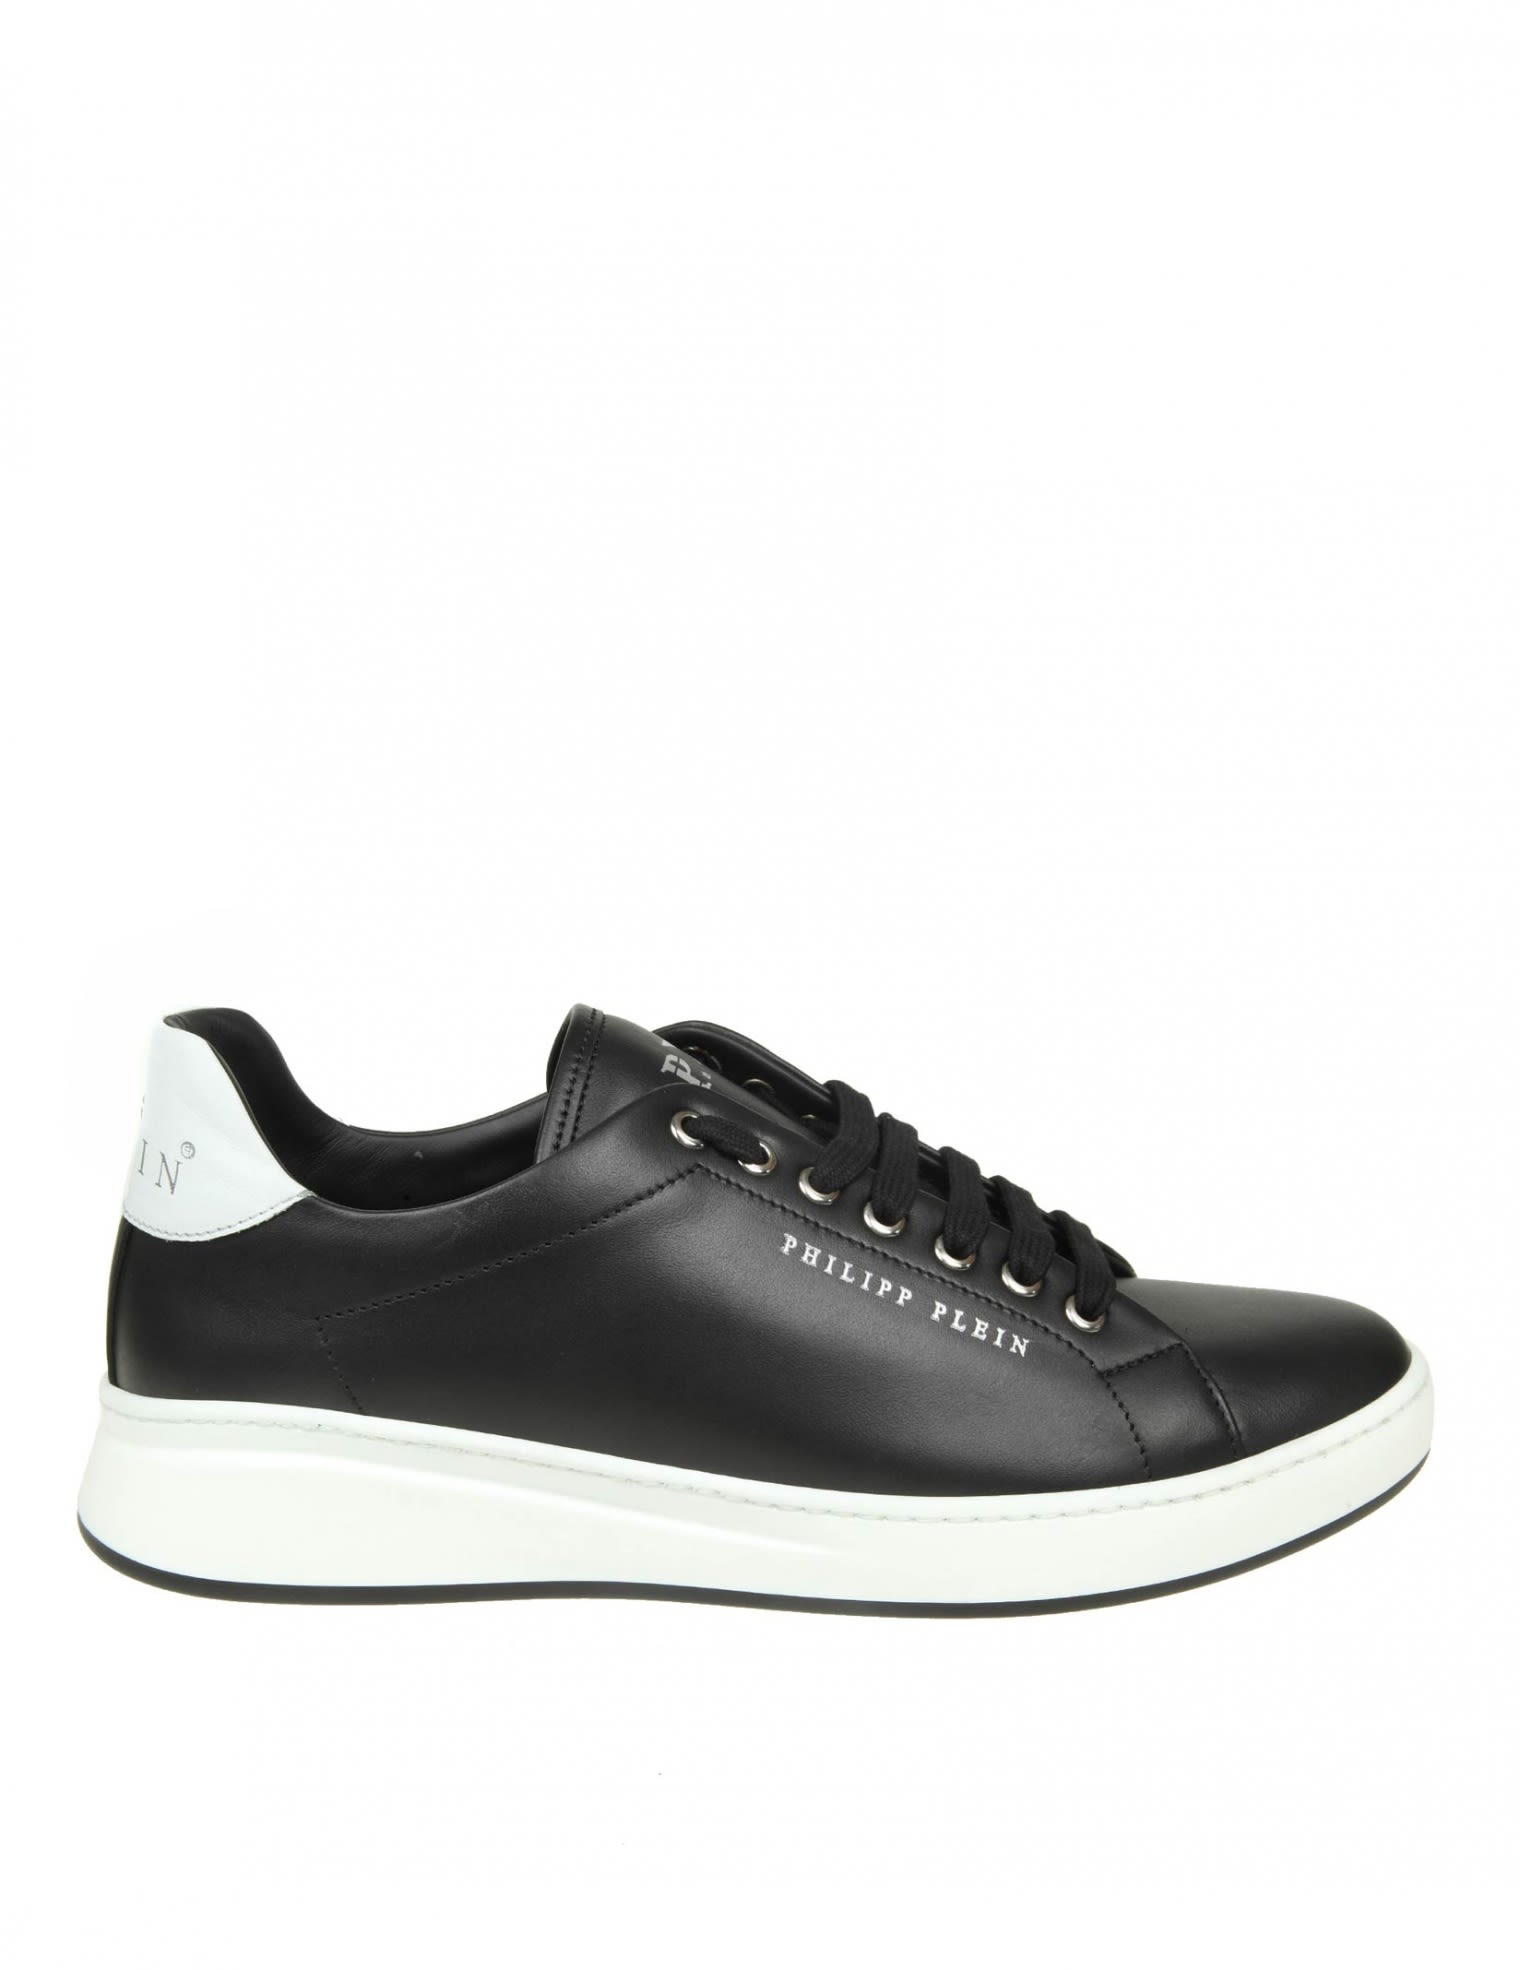 PHILIPP PLEIN SNEAKERS LO-TOP ORIGINAL IN BLACK LEATHER